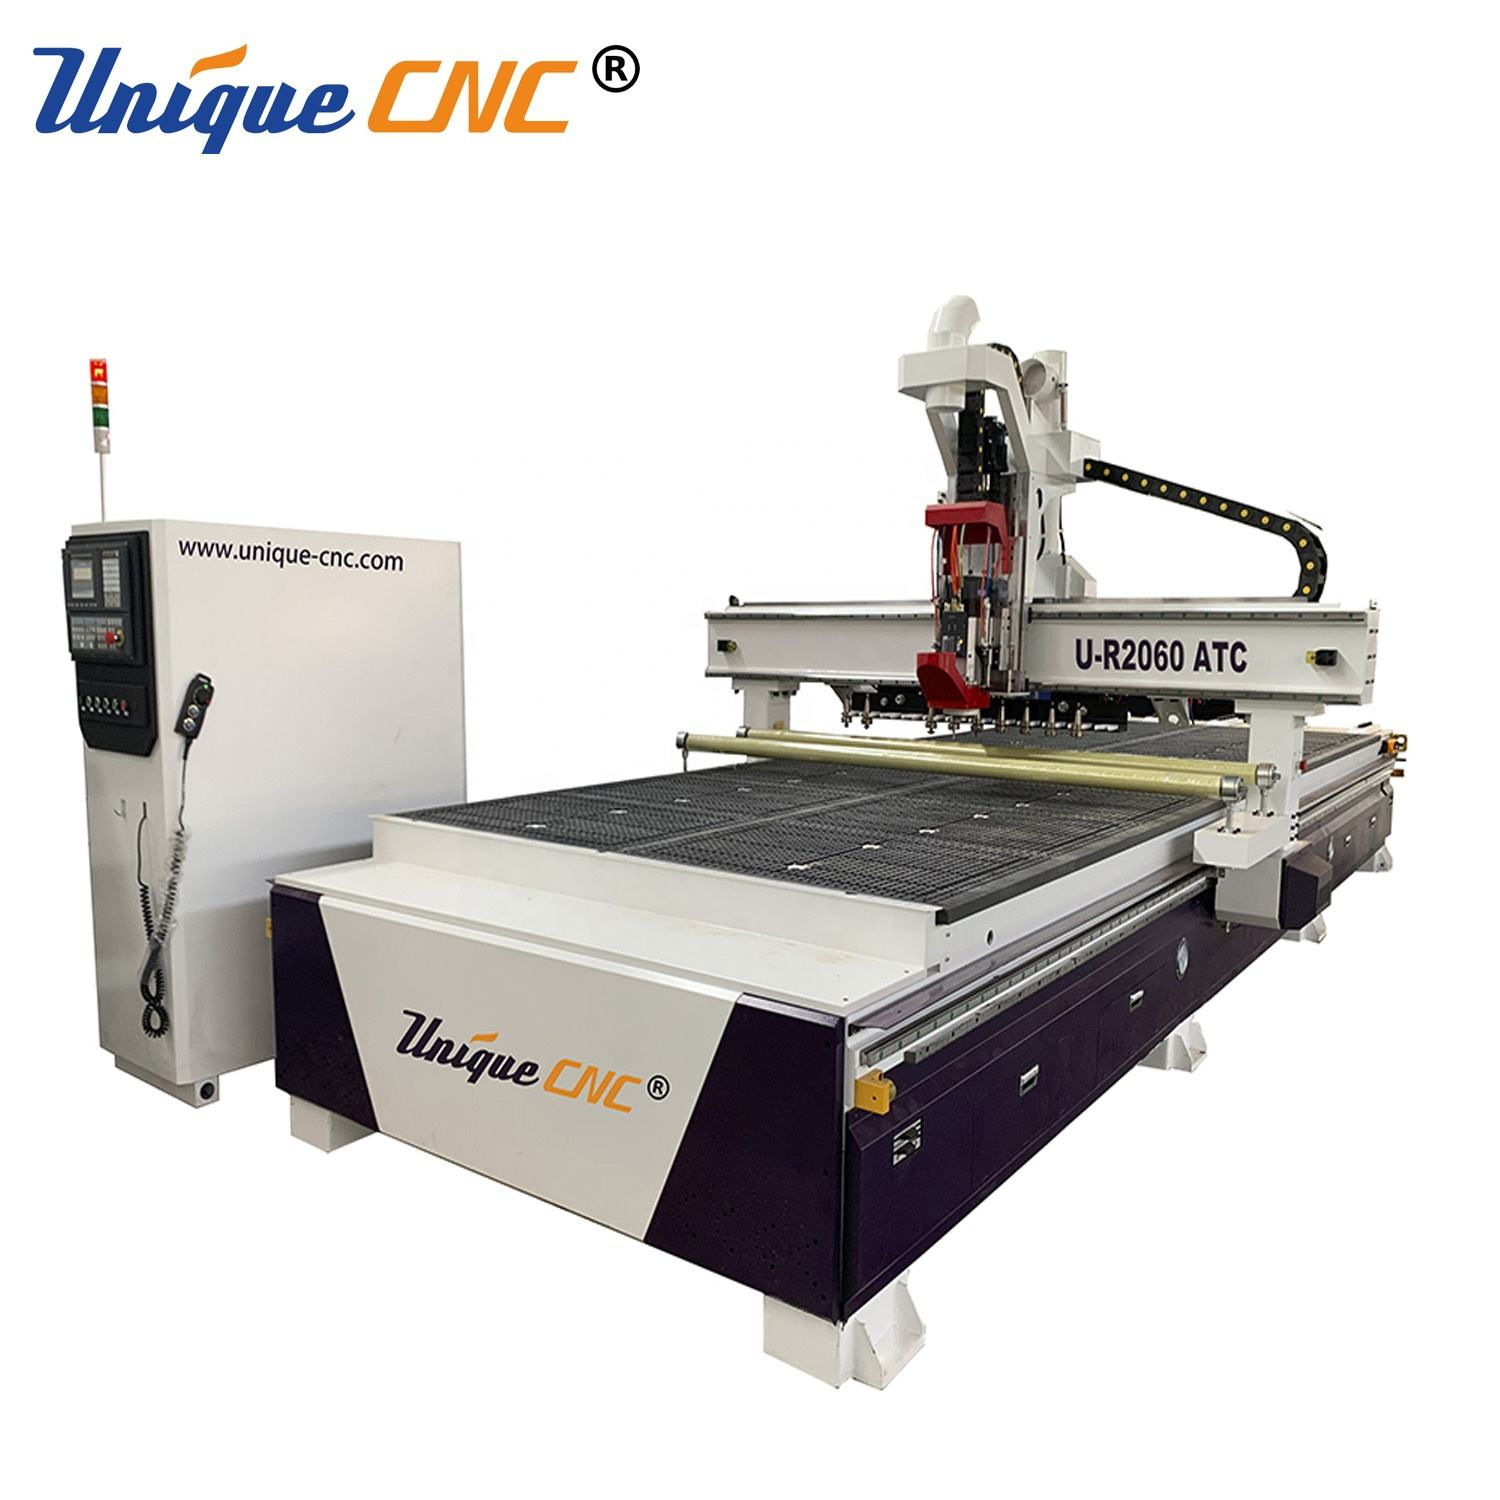 Unique CNC 2x6m 2060 wood cnc router cnc nesting cutting profile shaping machine for furniture cabinet door